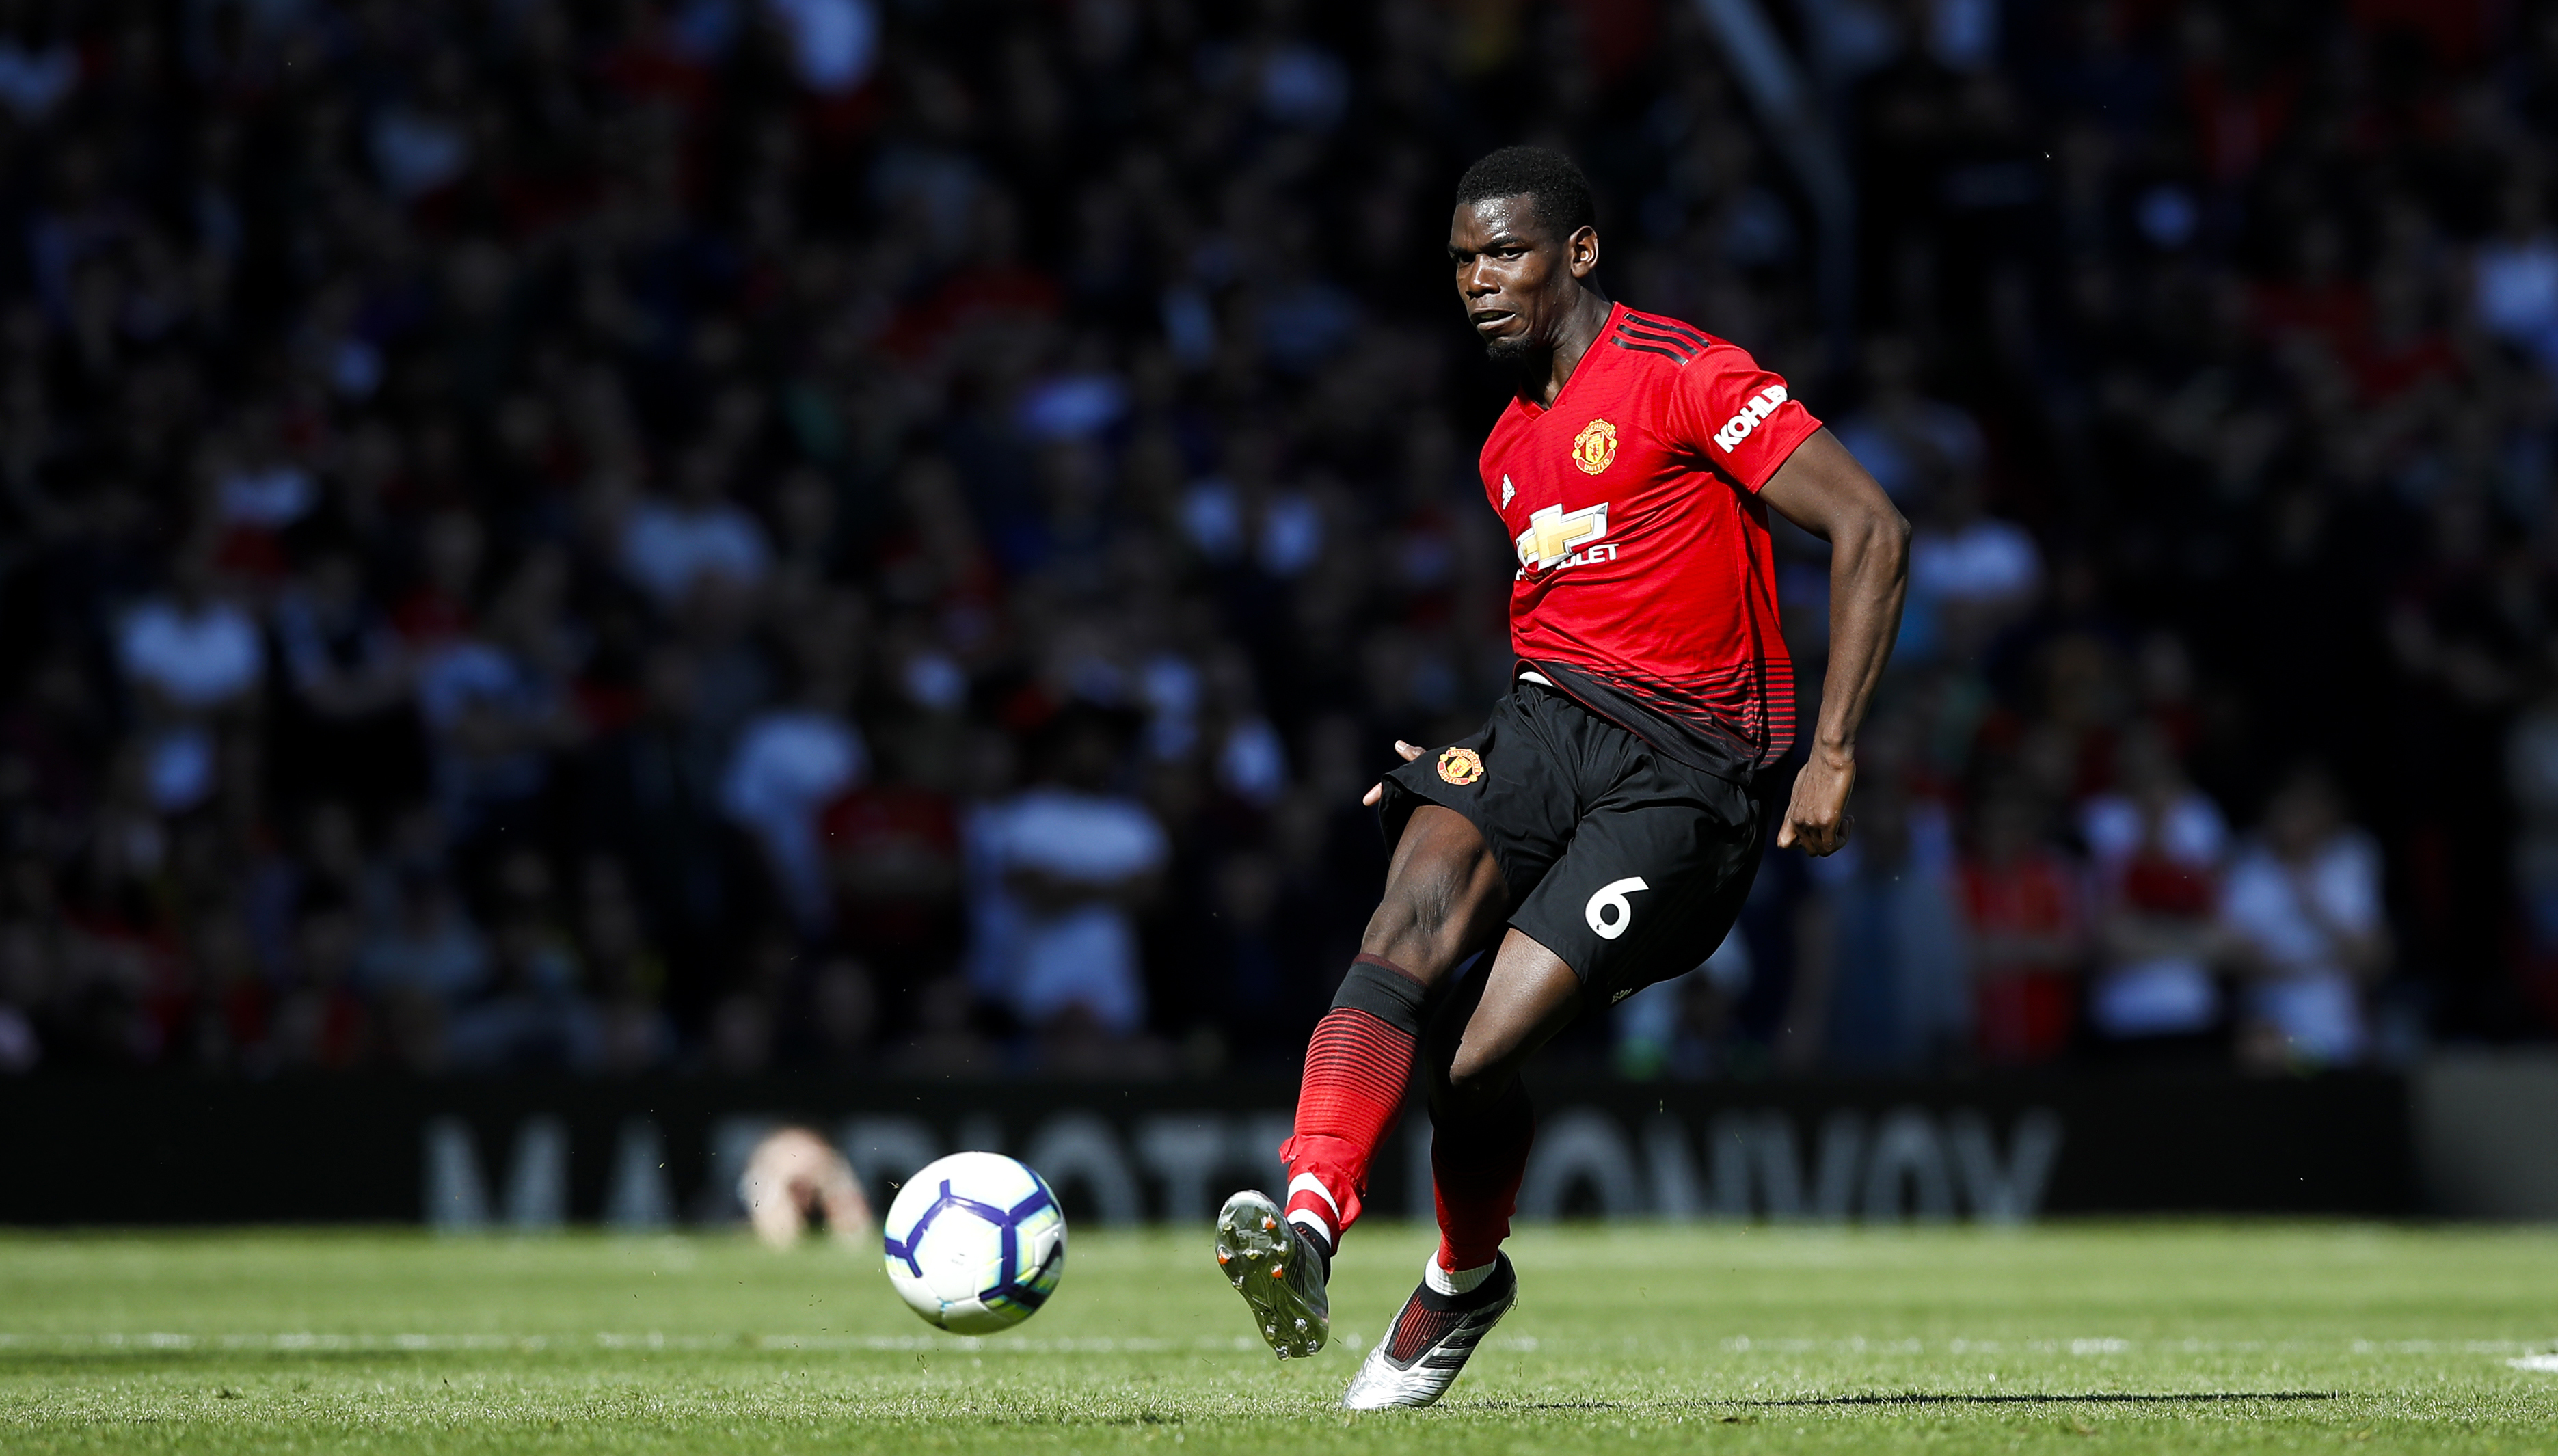 Paul Pogba has been in form during pre-season